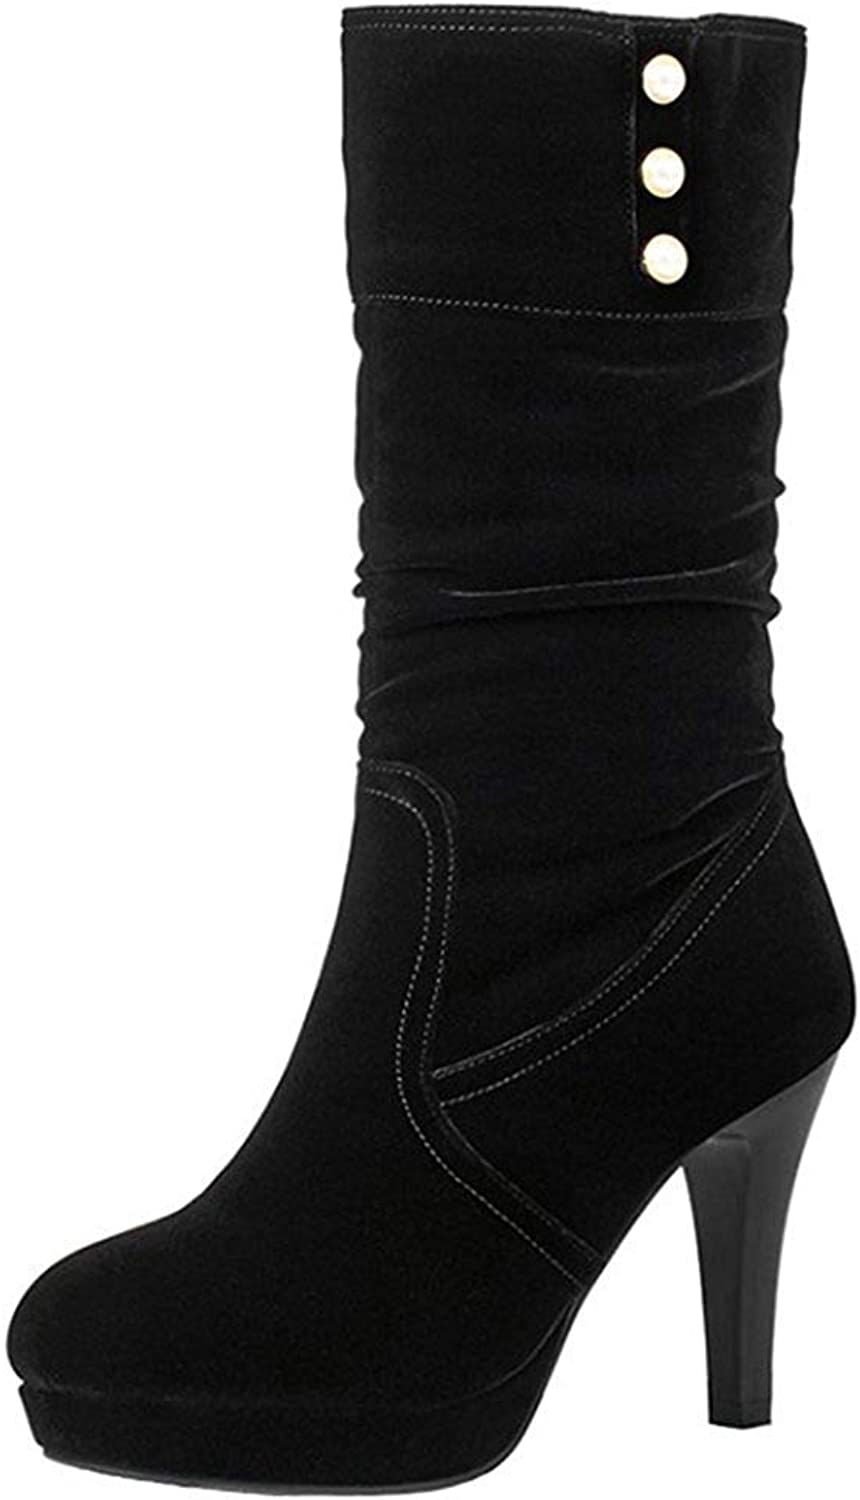 Gedigits Women's Trendy Beaded Pointy High Heel Platform Round Toe Faux Suede Pull On Slouchy Mid Calf Boots Black 7 M US